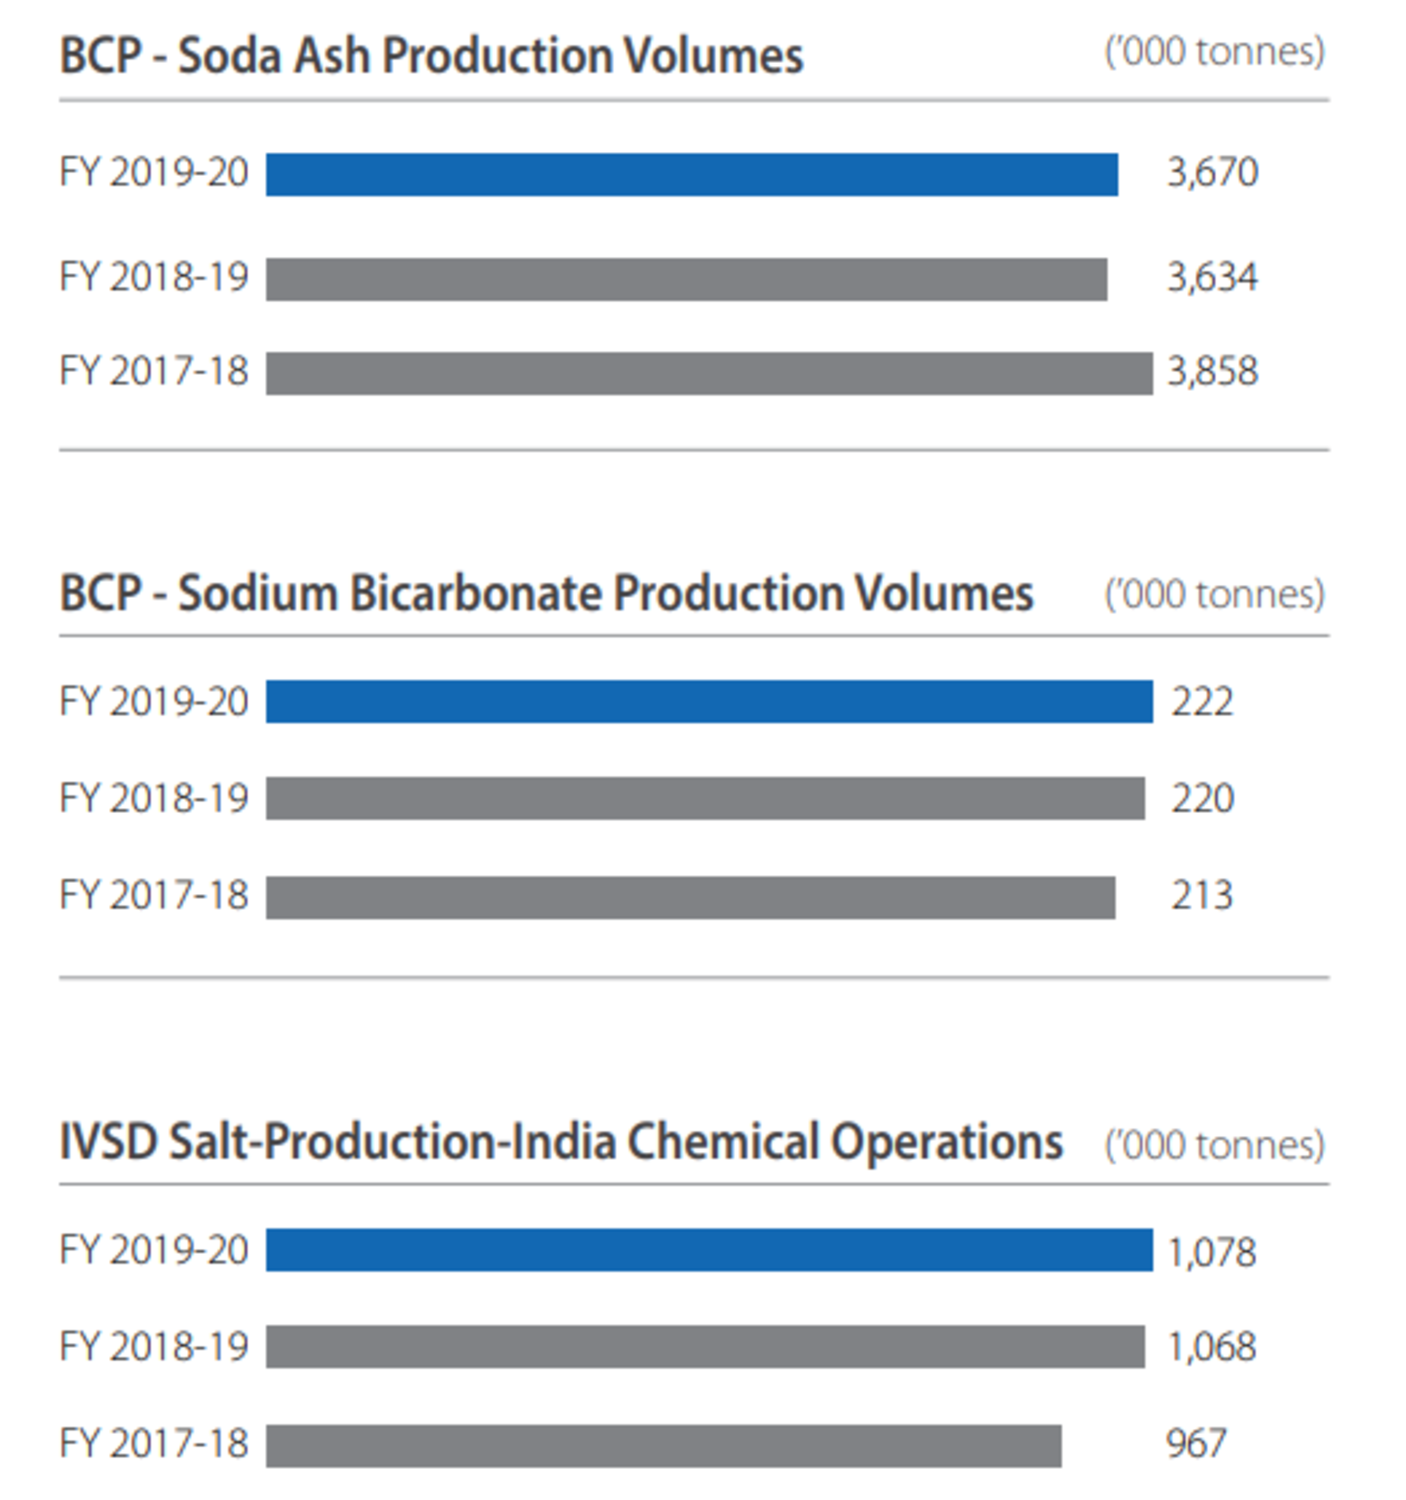 Tata Chemicals Products